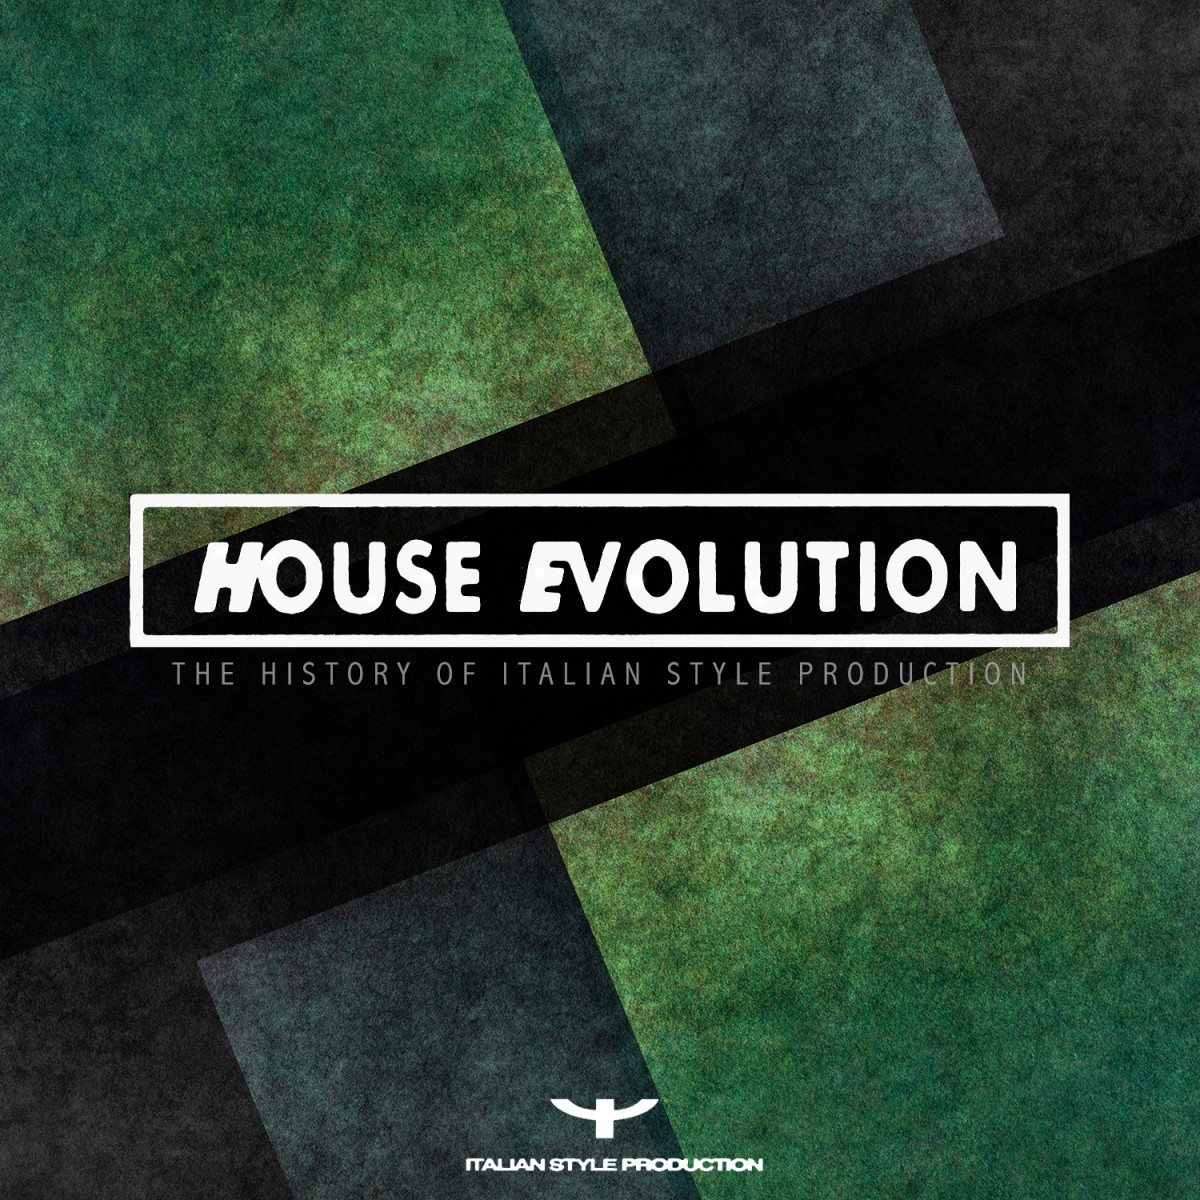 HOUSE EVOLUTION The History of Italian Style Production